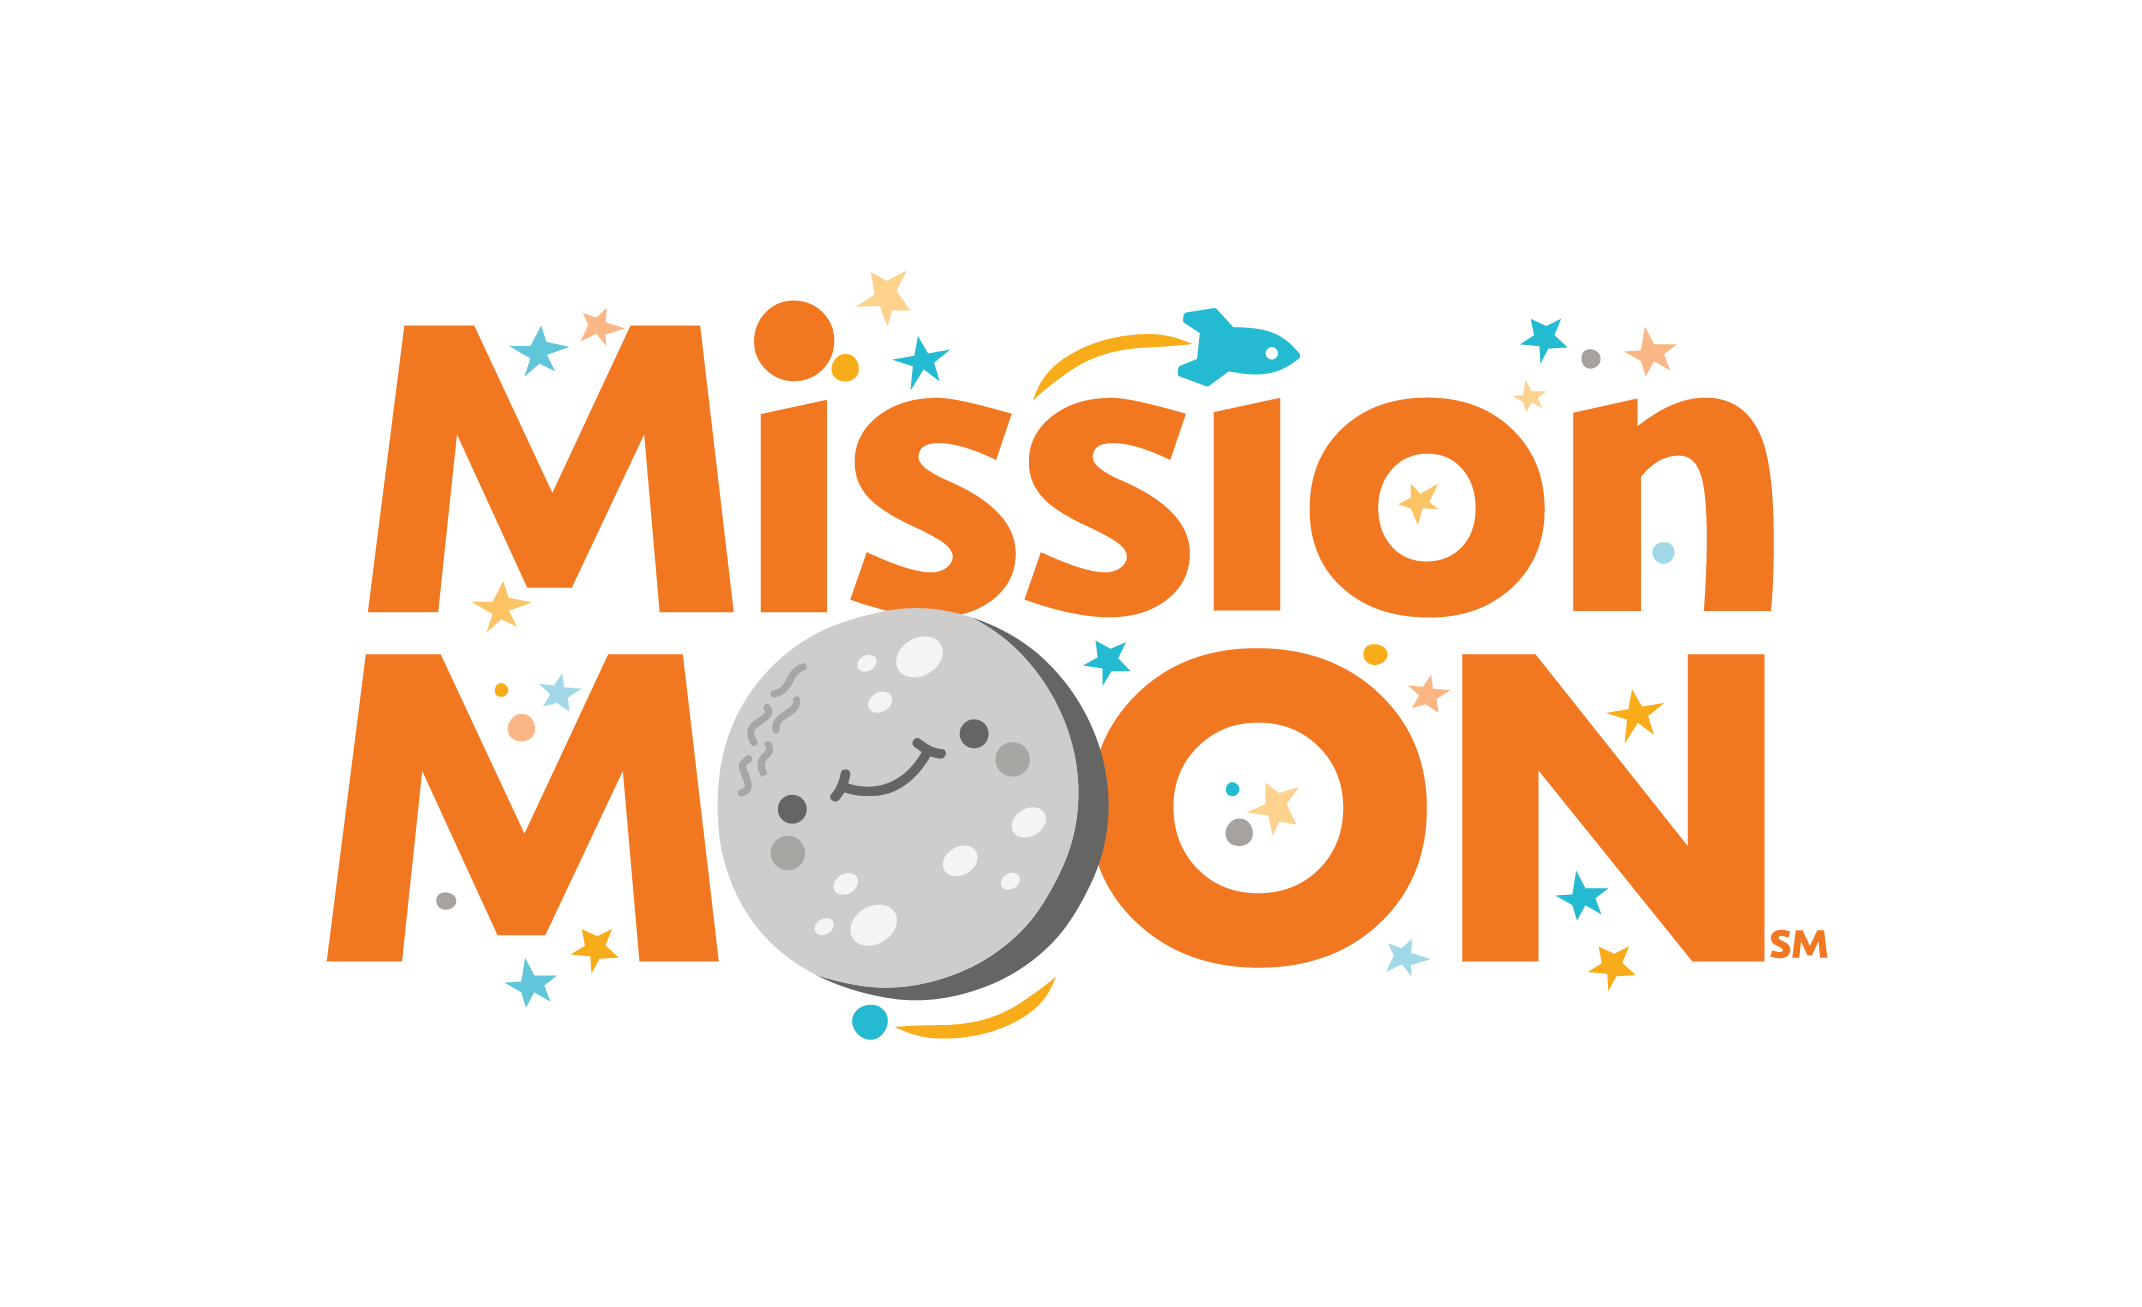 FLL Jr Mission Moon Logo